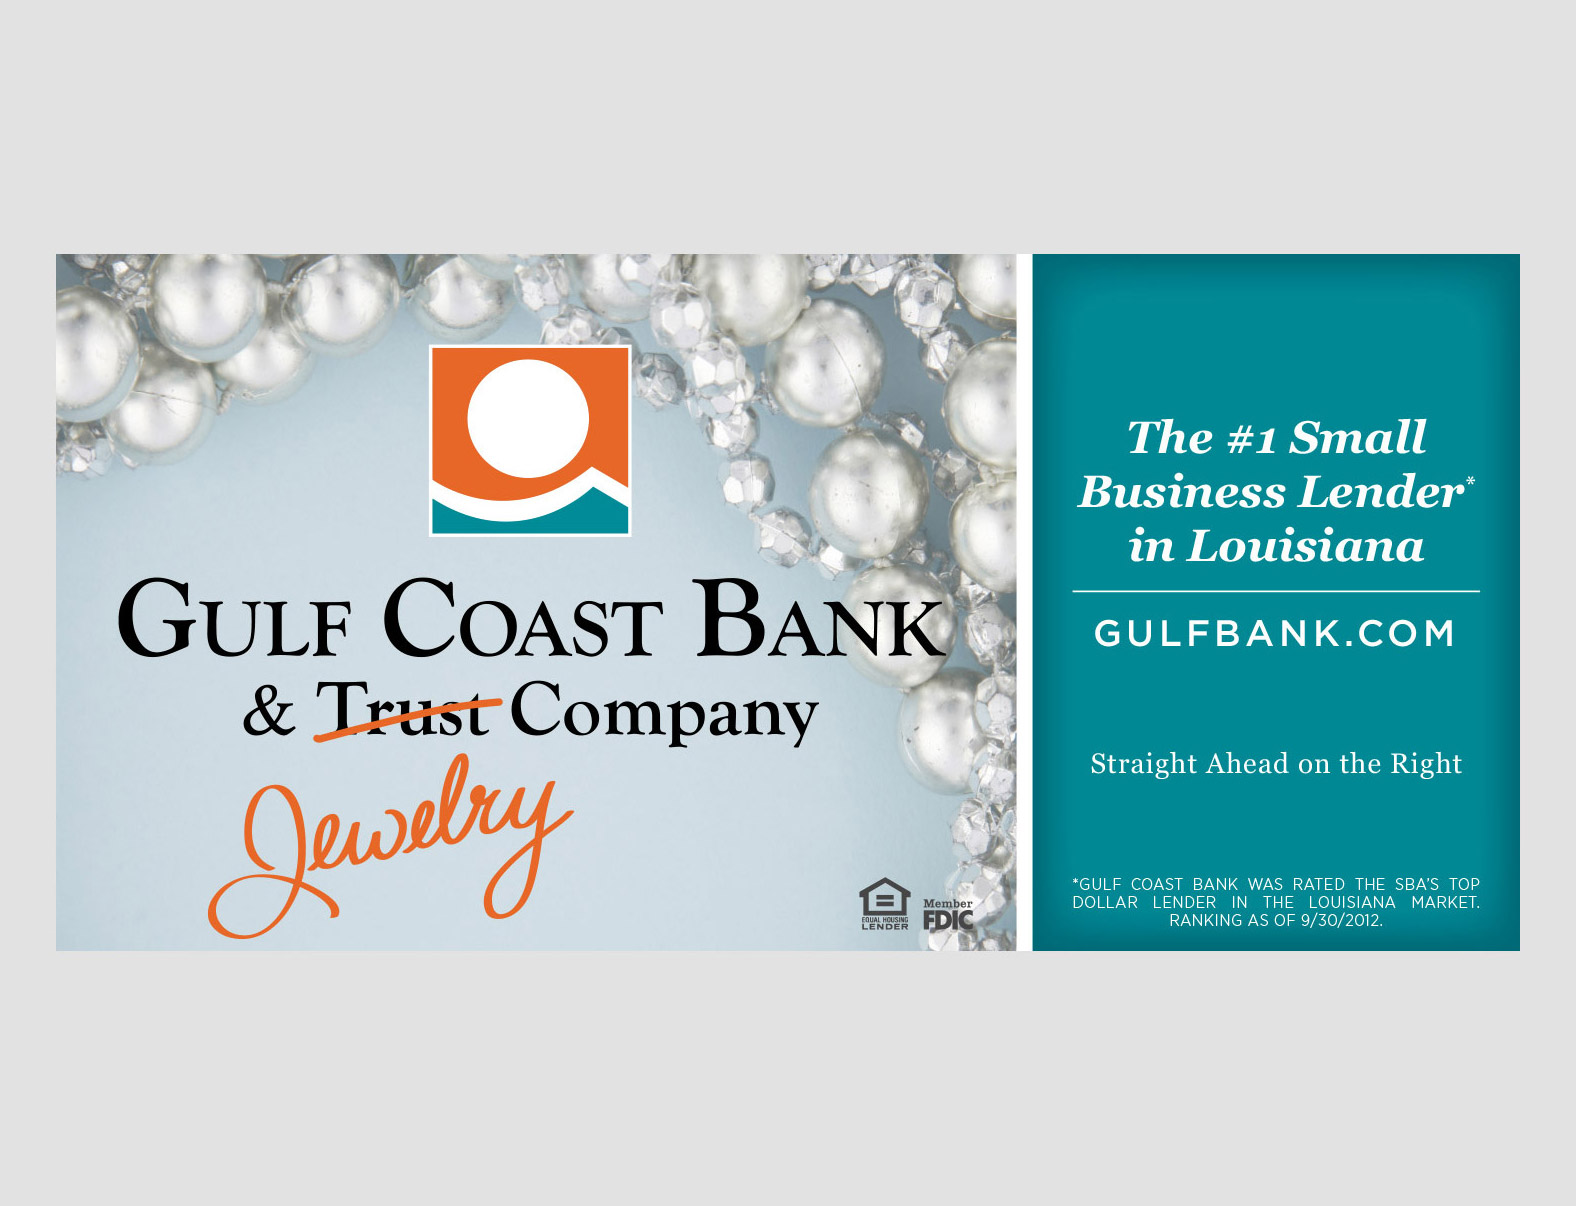 OUTDOOR_Gulf-Coast-Bank-Digital-Poster-Jewelry.jpg